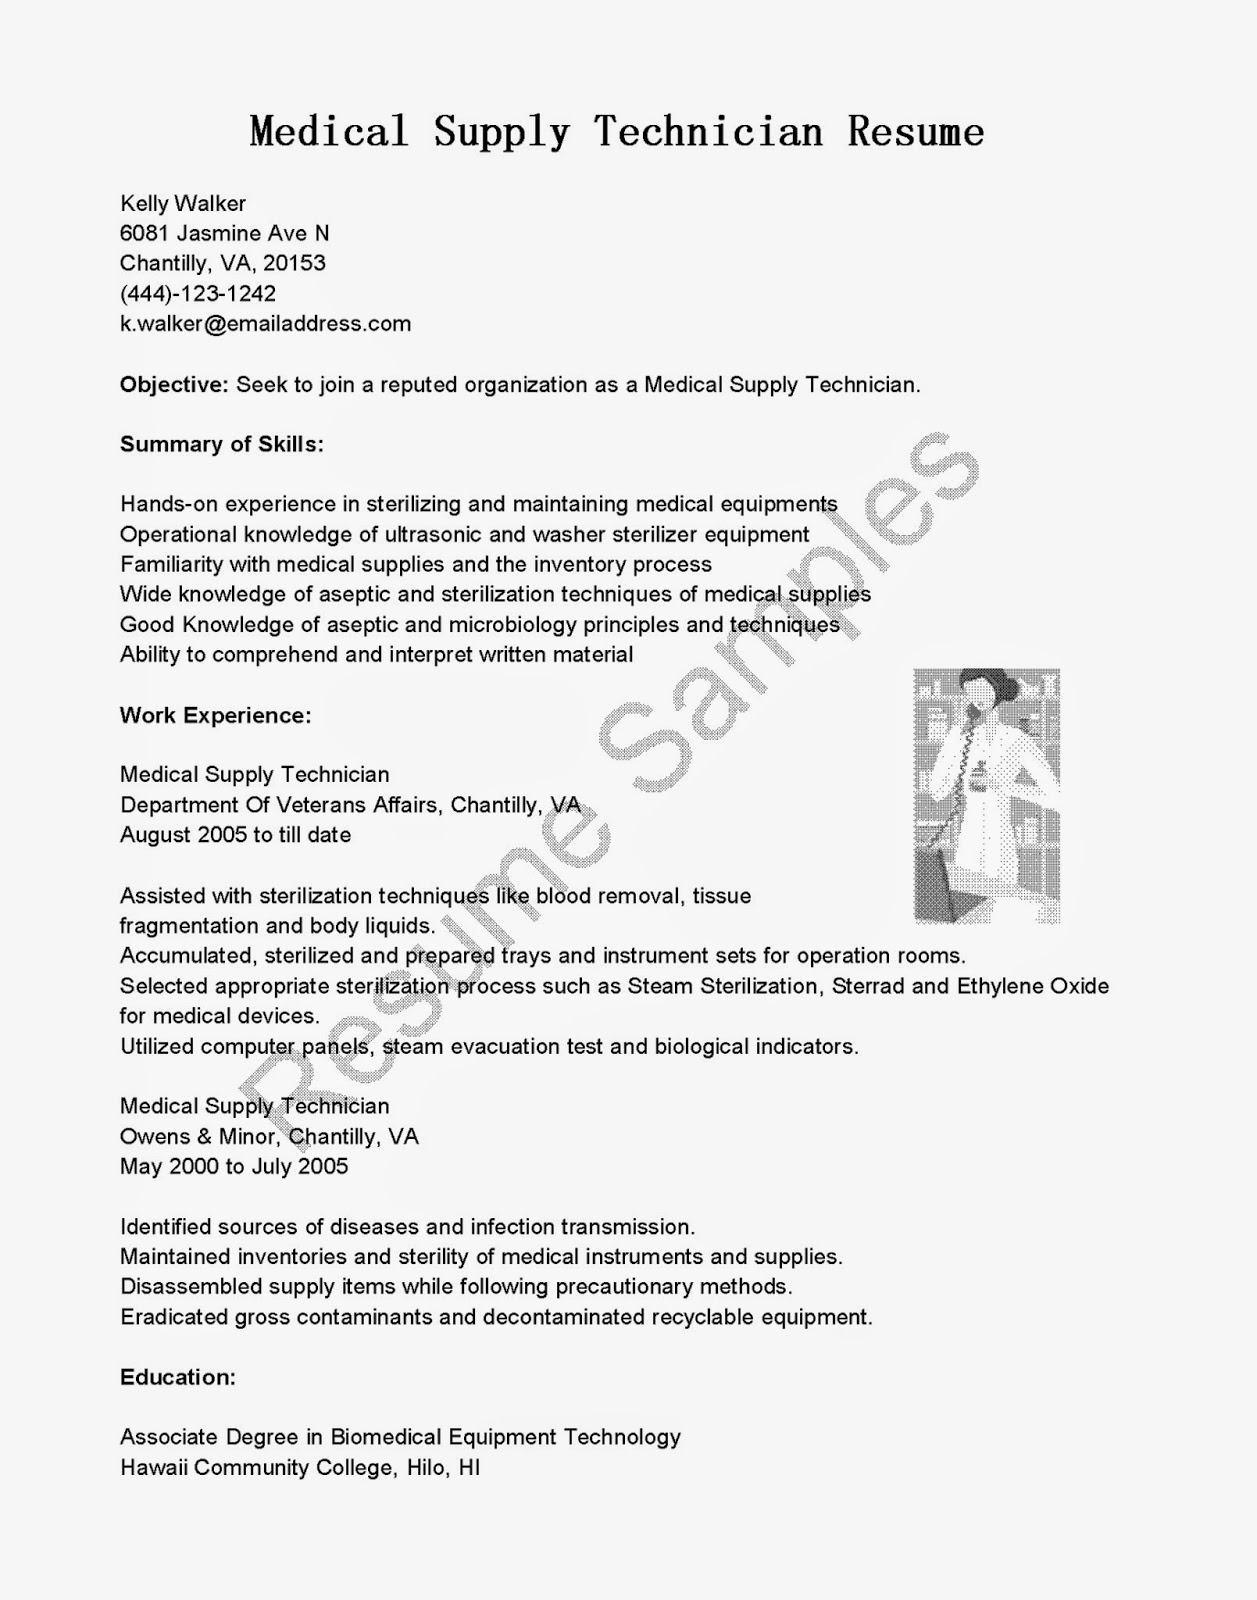 resume samples  medical supply technician resume sample